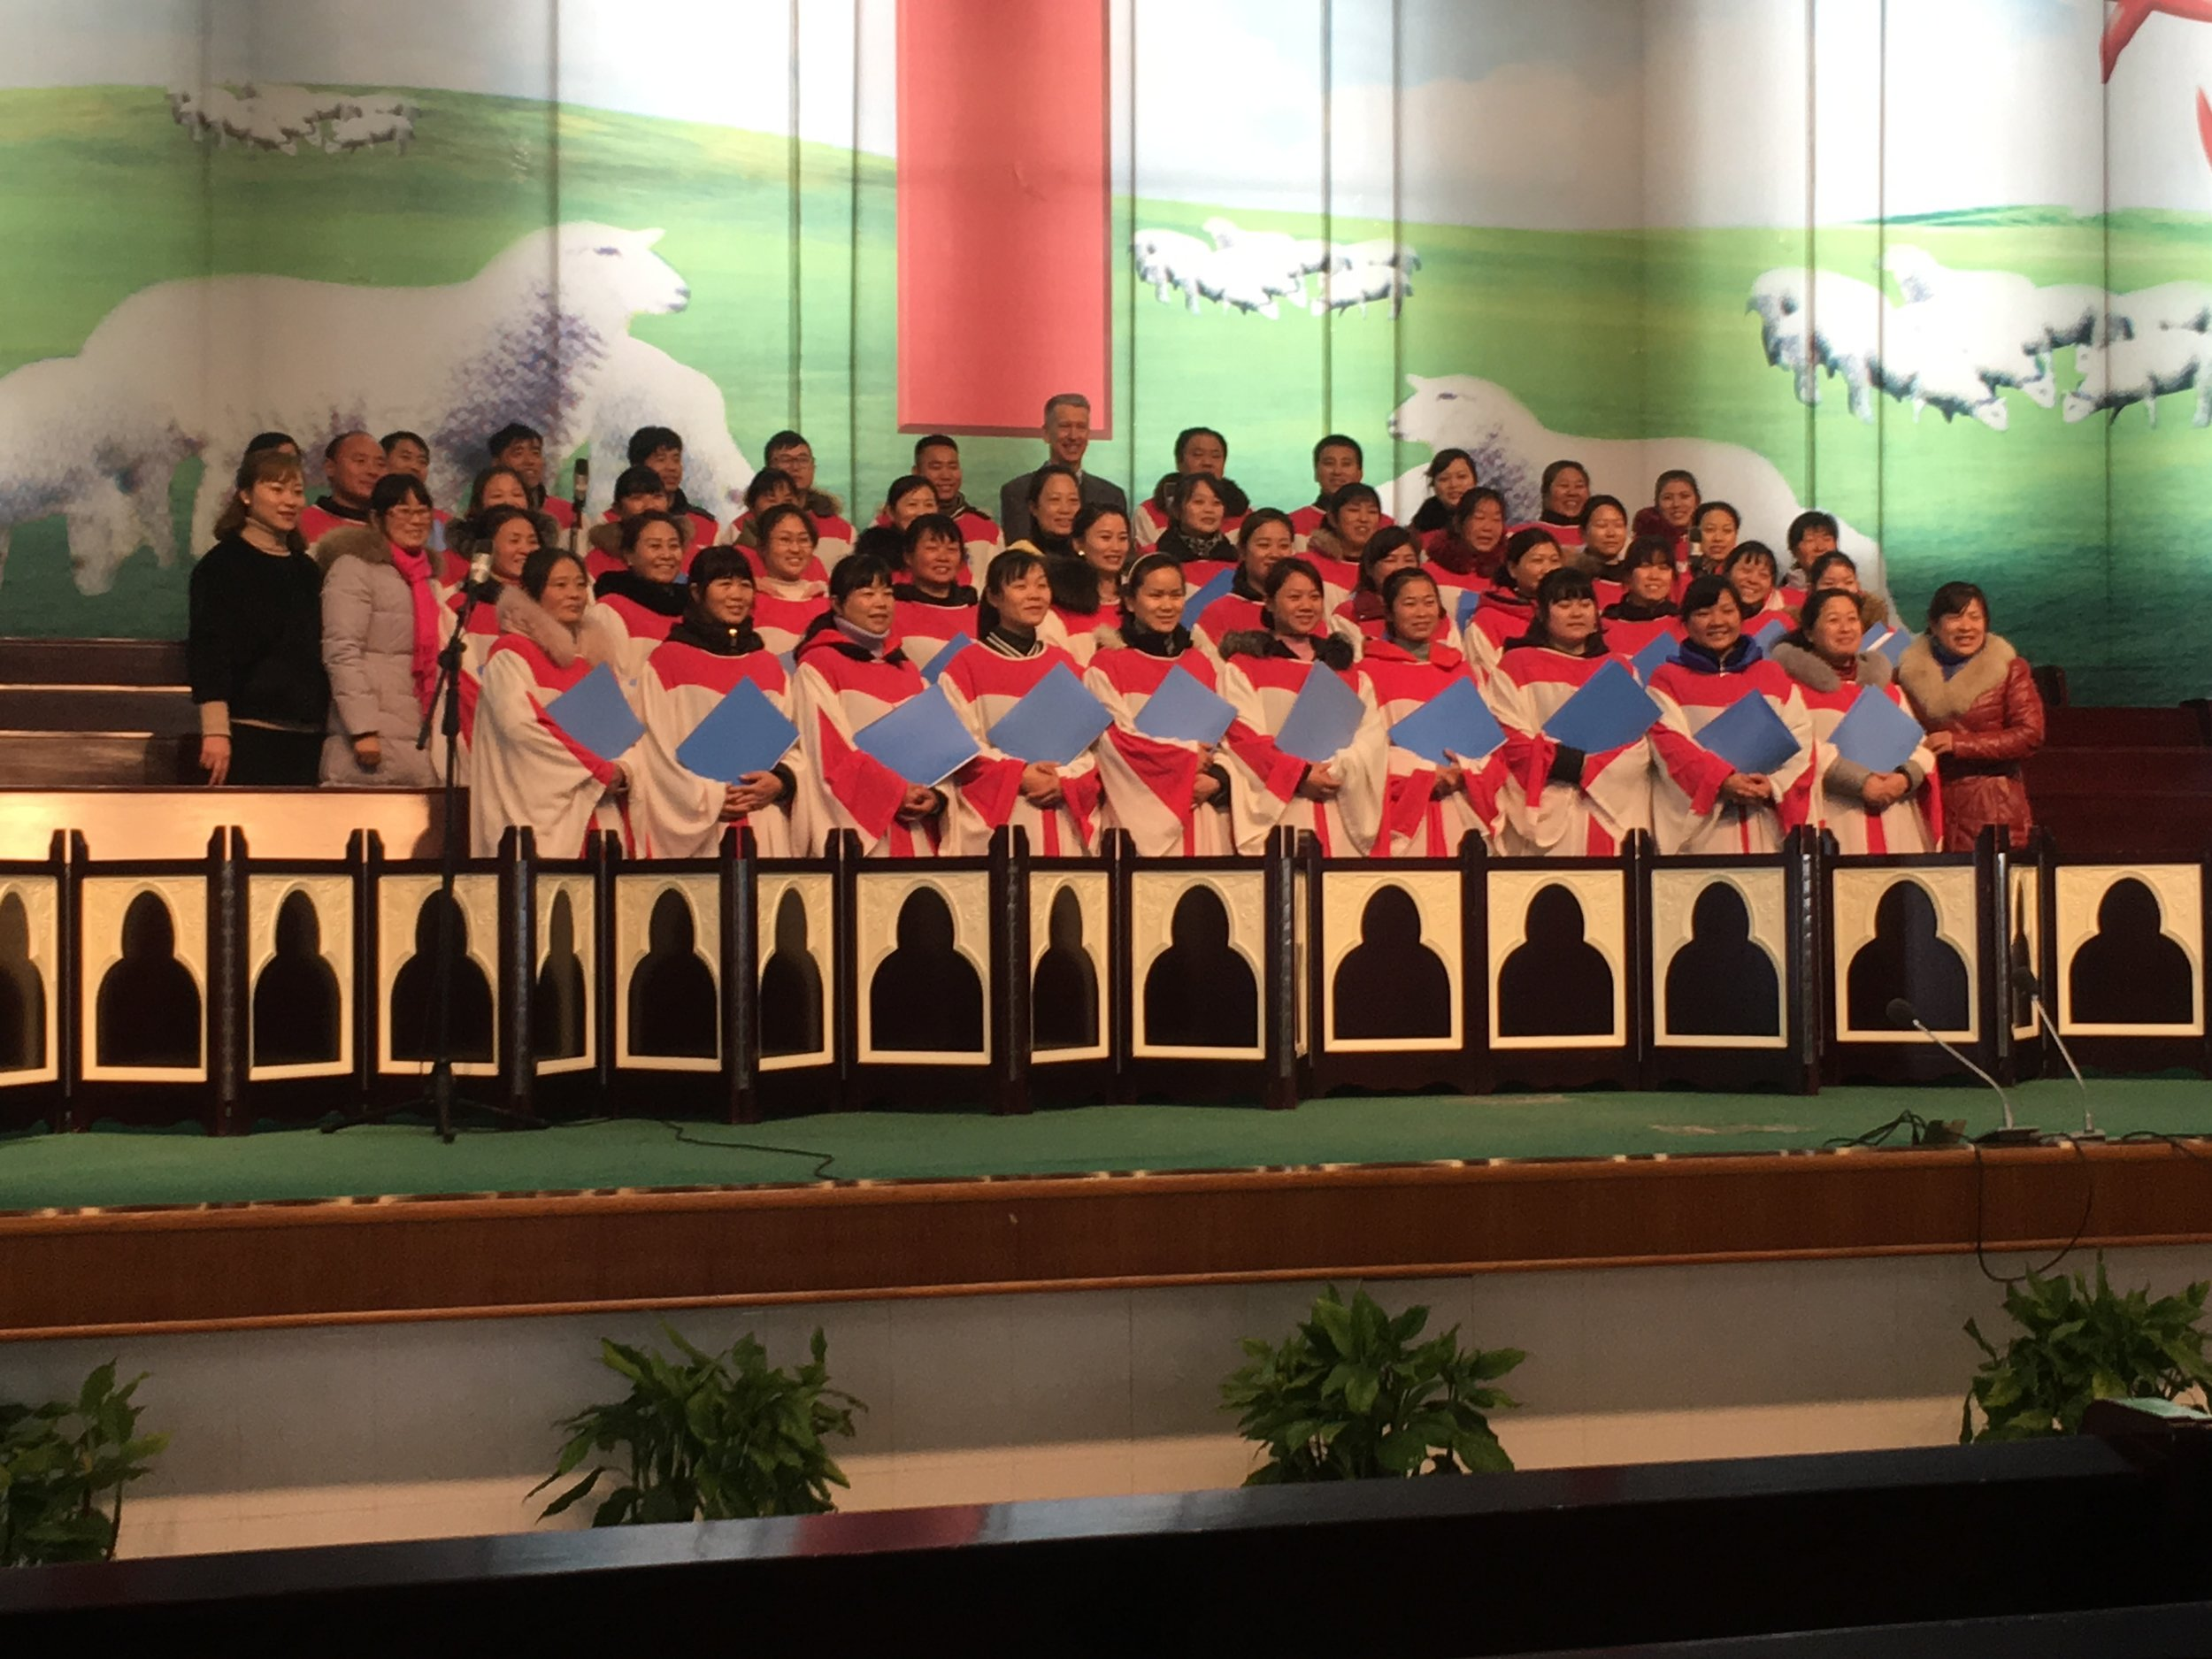 Standing in the back row, middle, with the choir